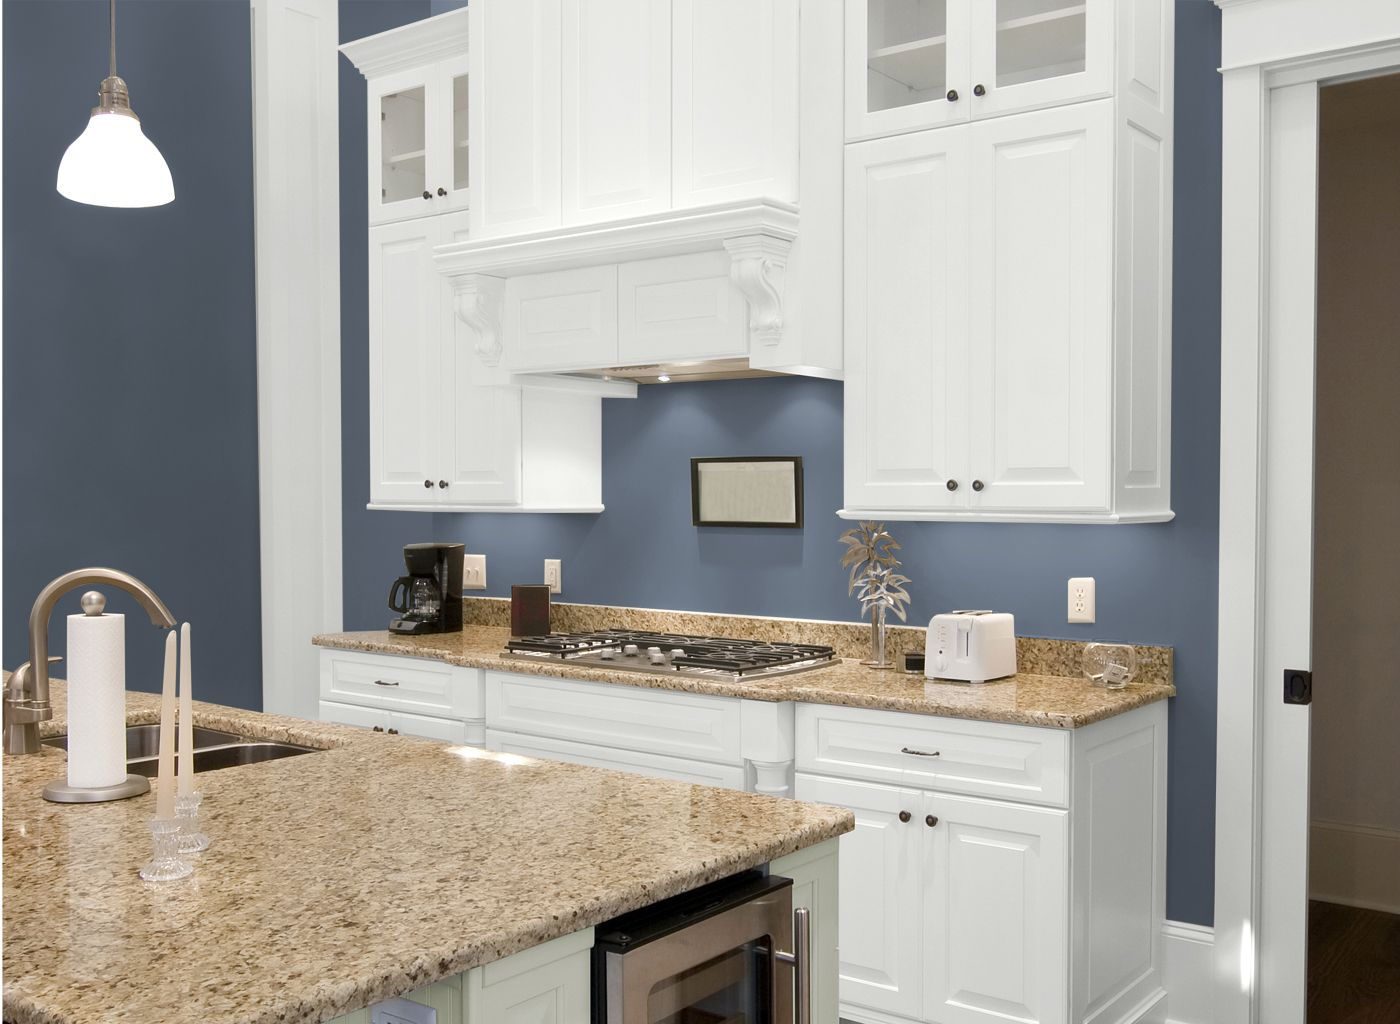 Kitchen in BlueGrey Slate. I LOVE the color!!! Grey